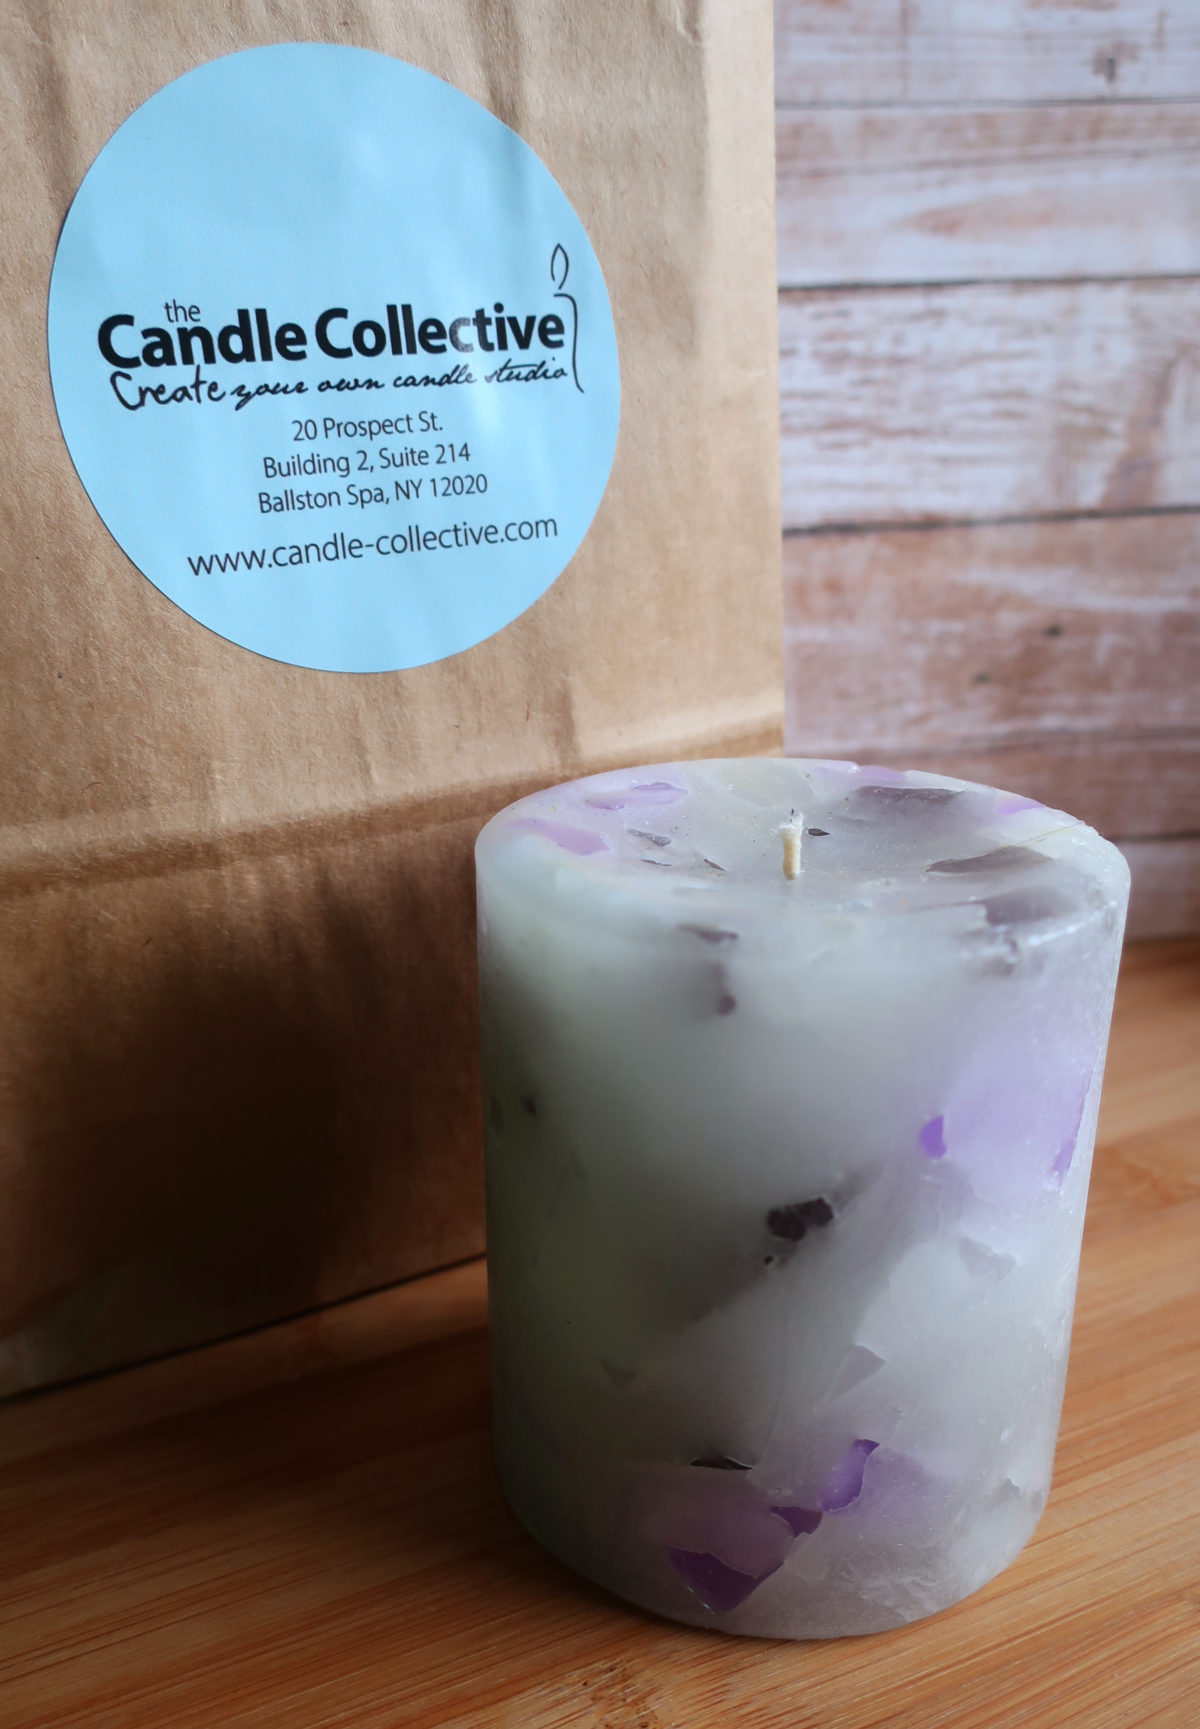 The Candle Collective